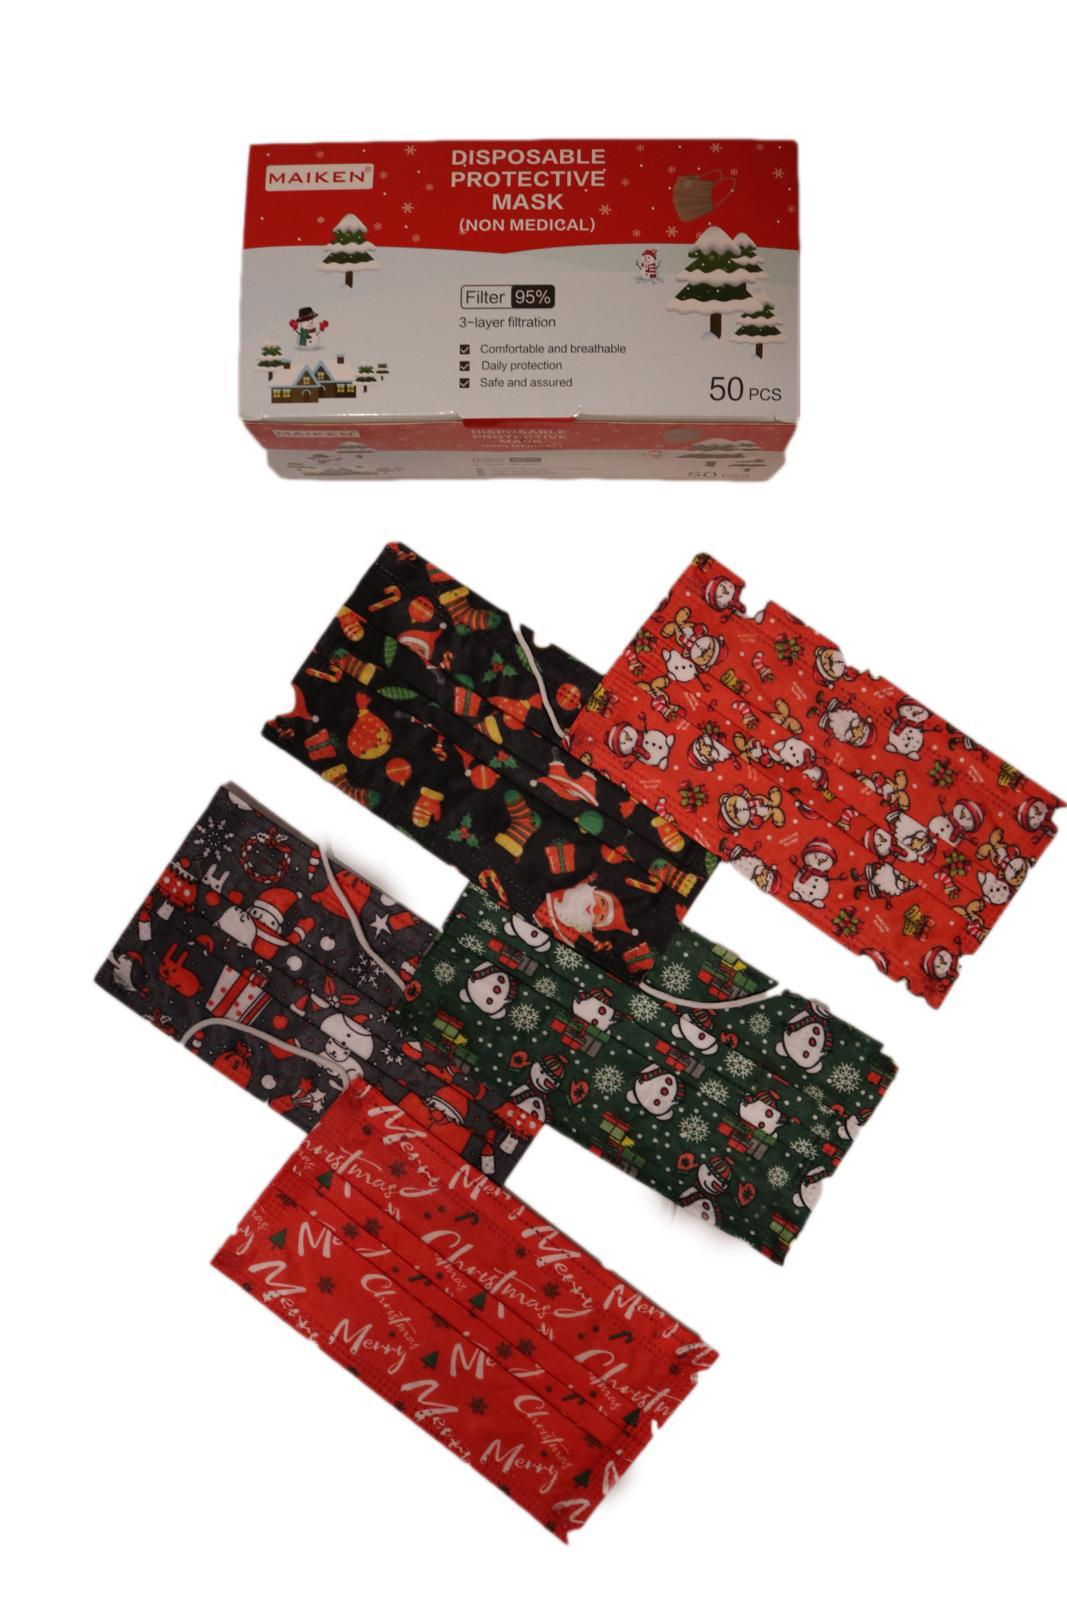 Face Mask - Christmas 3 Ply Disposable Face Masks - Pack Of 50 - FREE SHIPPING - $0.49 Each